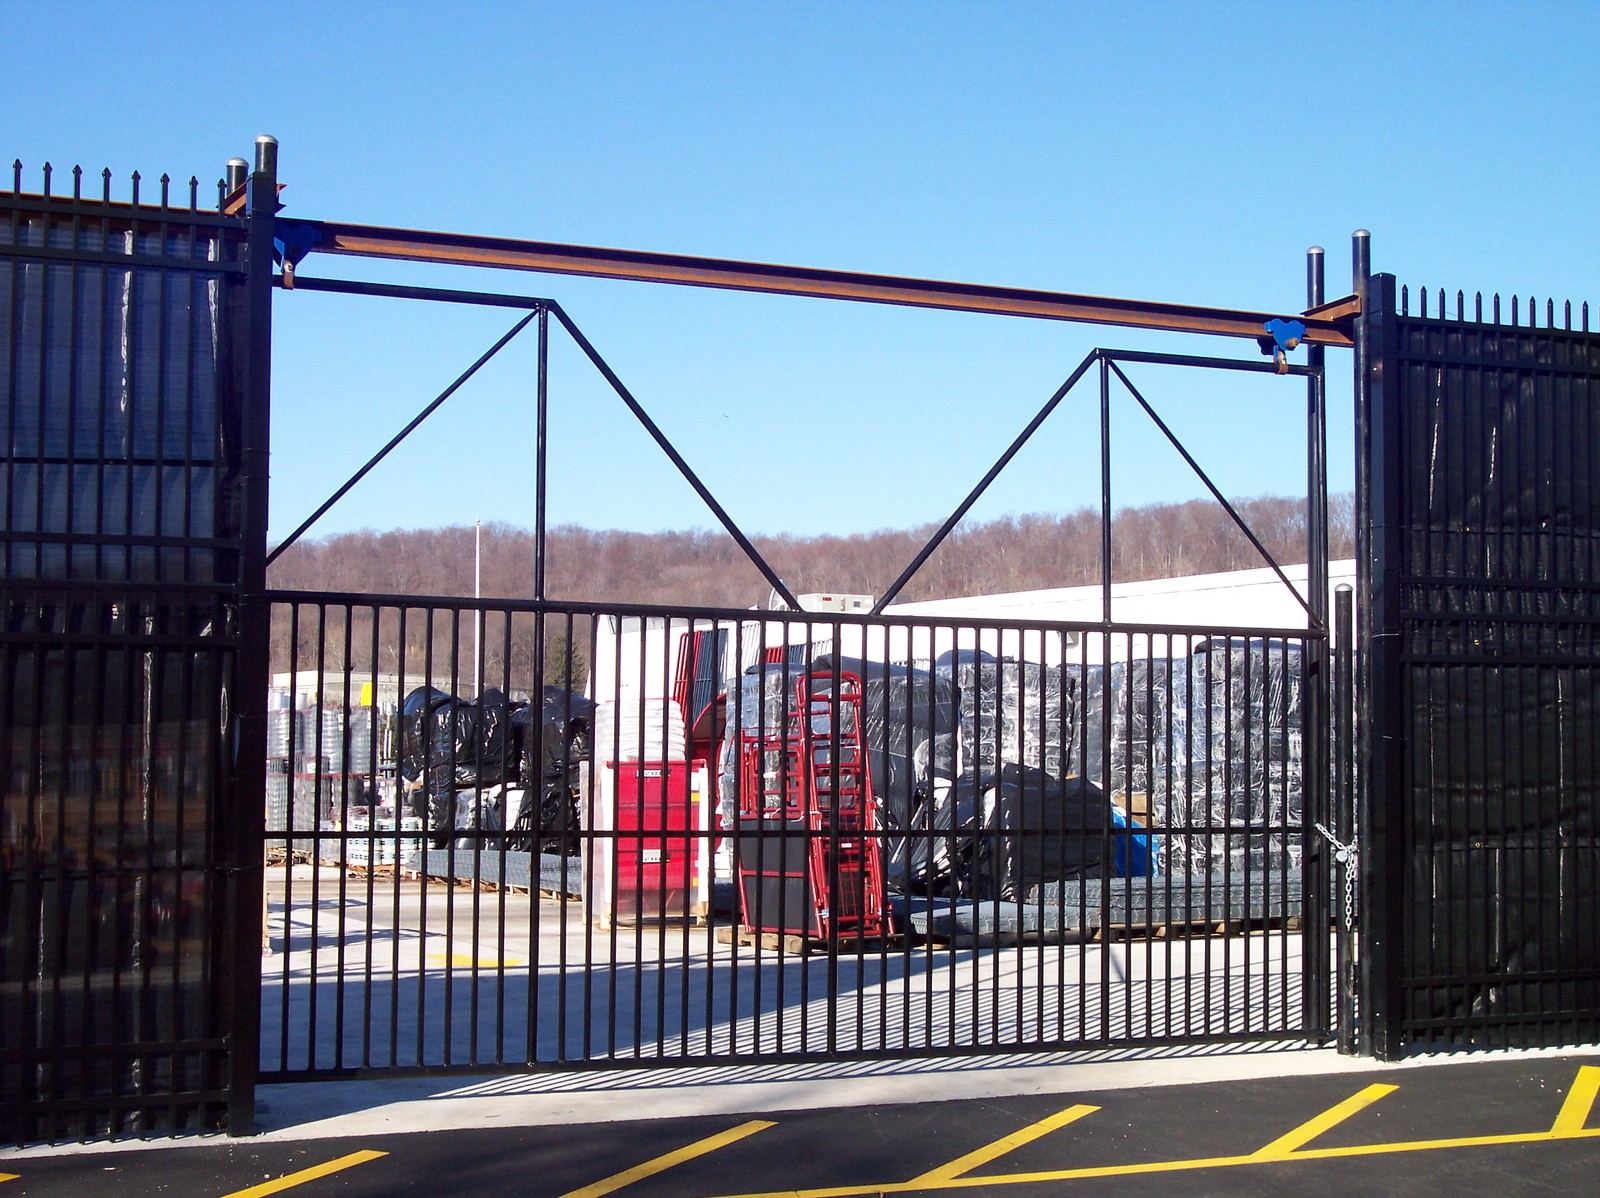 Commercial fences md and sons fencing nj